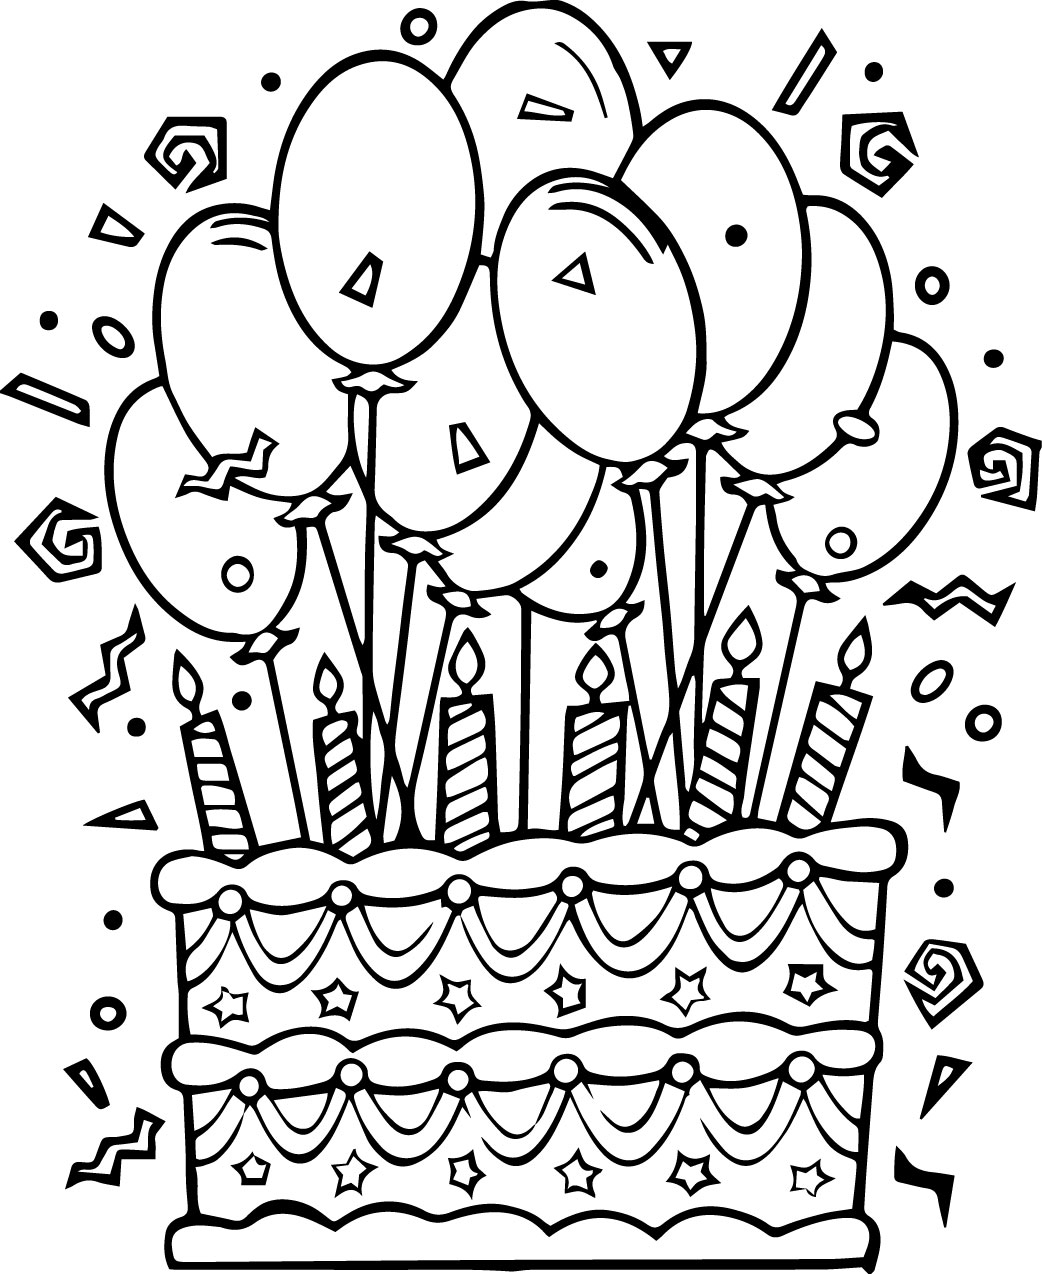 Uncategorized Coloring Pages Birthday birthday cake coloring pages wecoloringpage pages